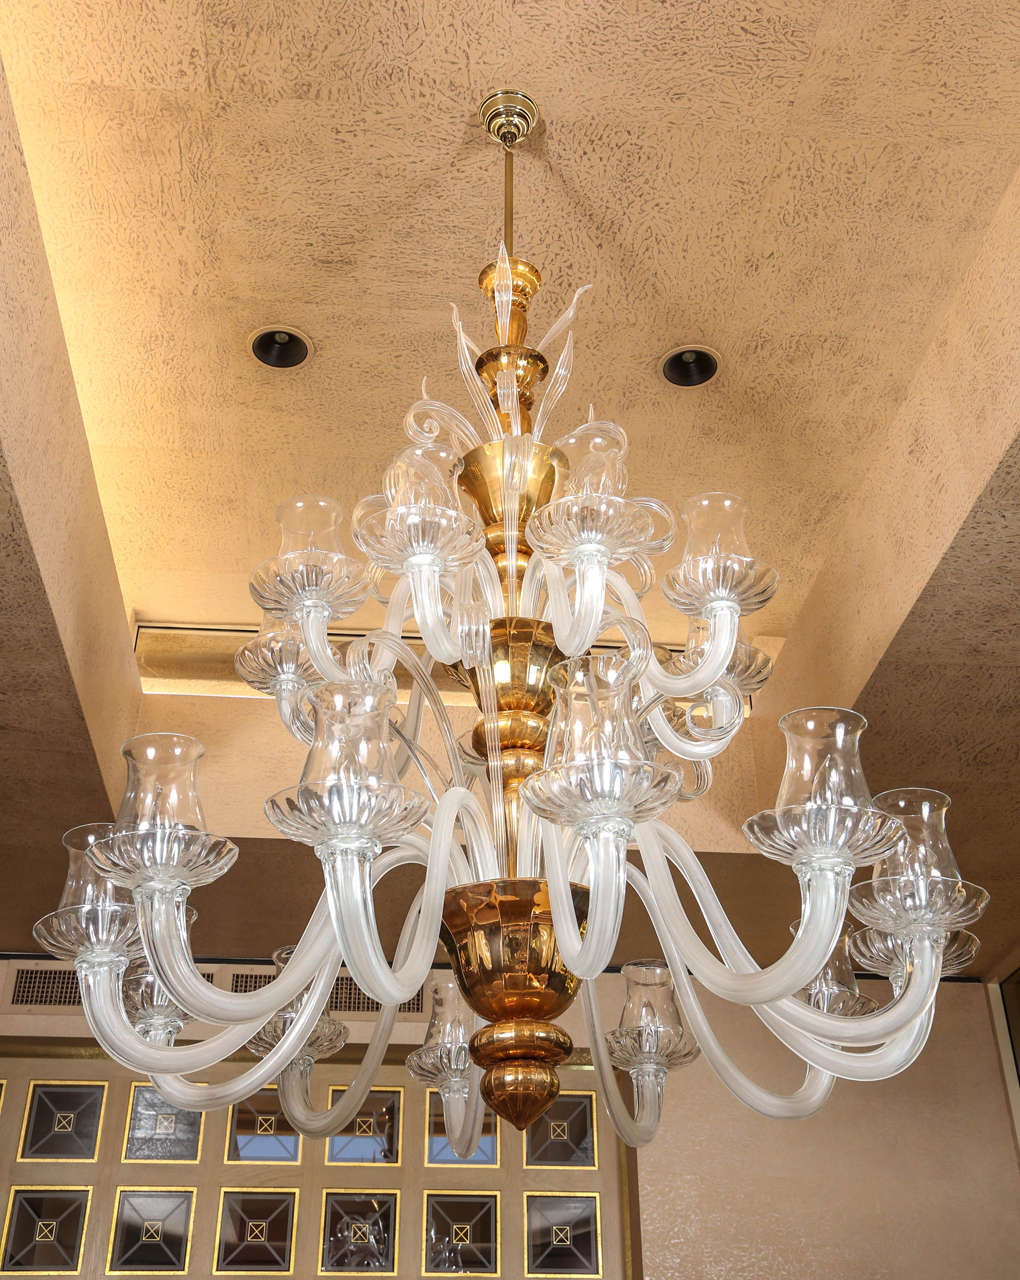 Truly stunning grand two-tier Venetian chandelier. The chandelier is elegantly accented with a gold centre armature which supports twenty-one-light sources.